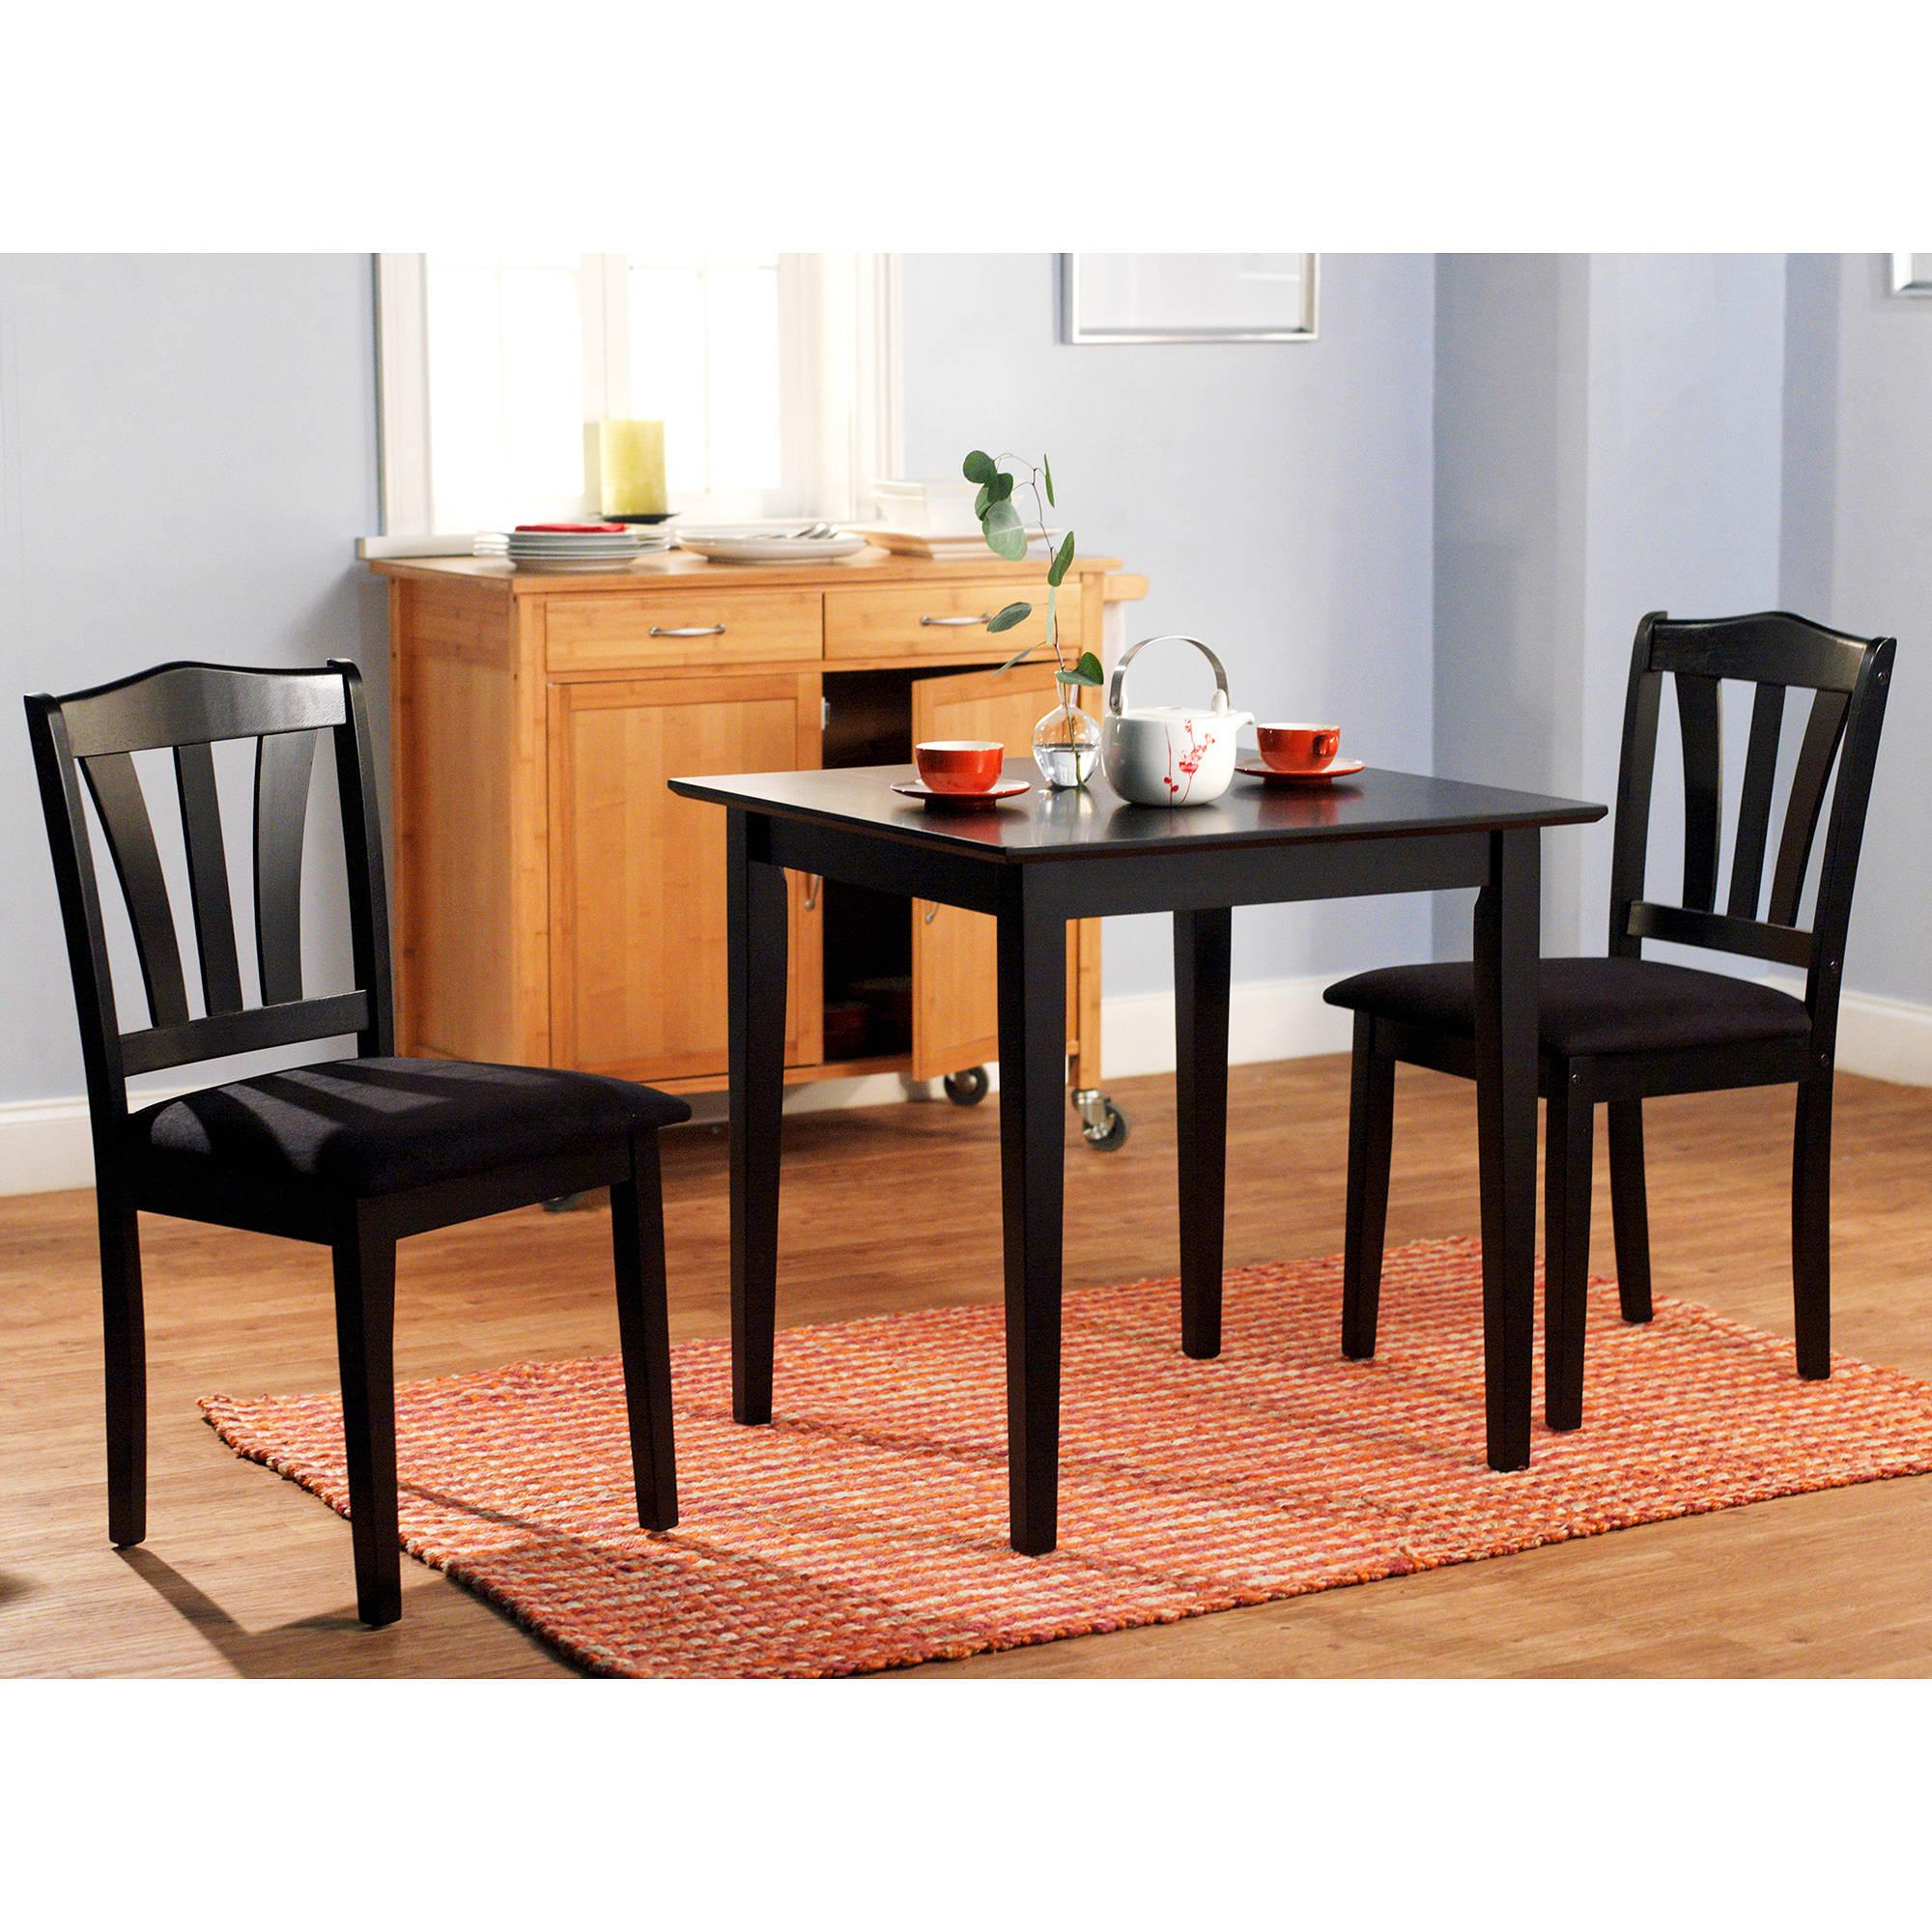 Current 3 Piece Dining Sets Inside Details About 3 Piece Dining Set Table 2 Chairs Kitchen Room Wood Furniture Dinette Modern New (View 10 of 20)